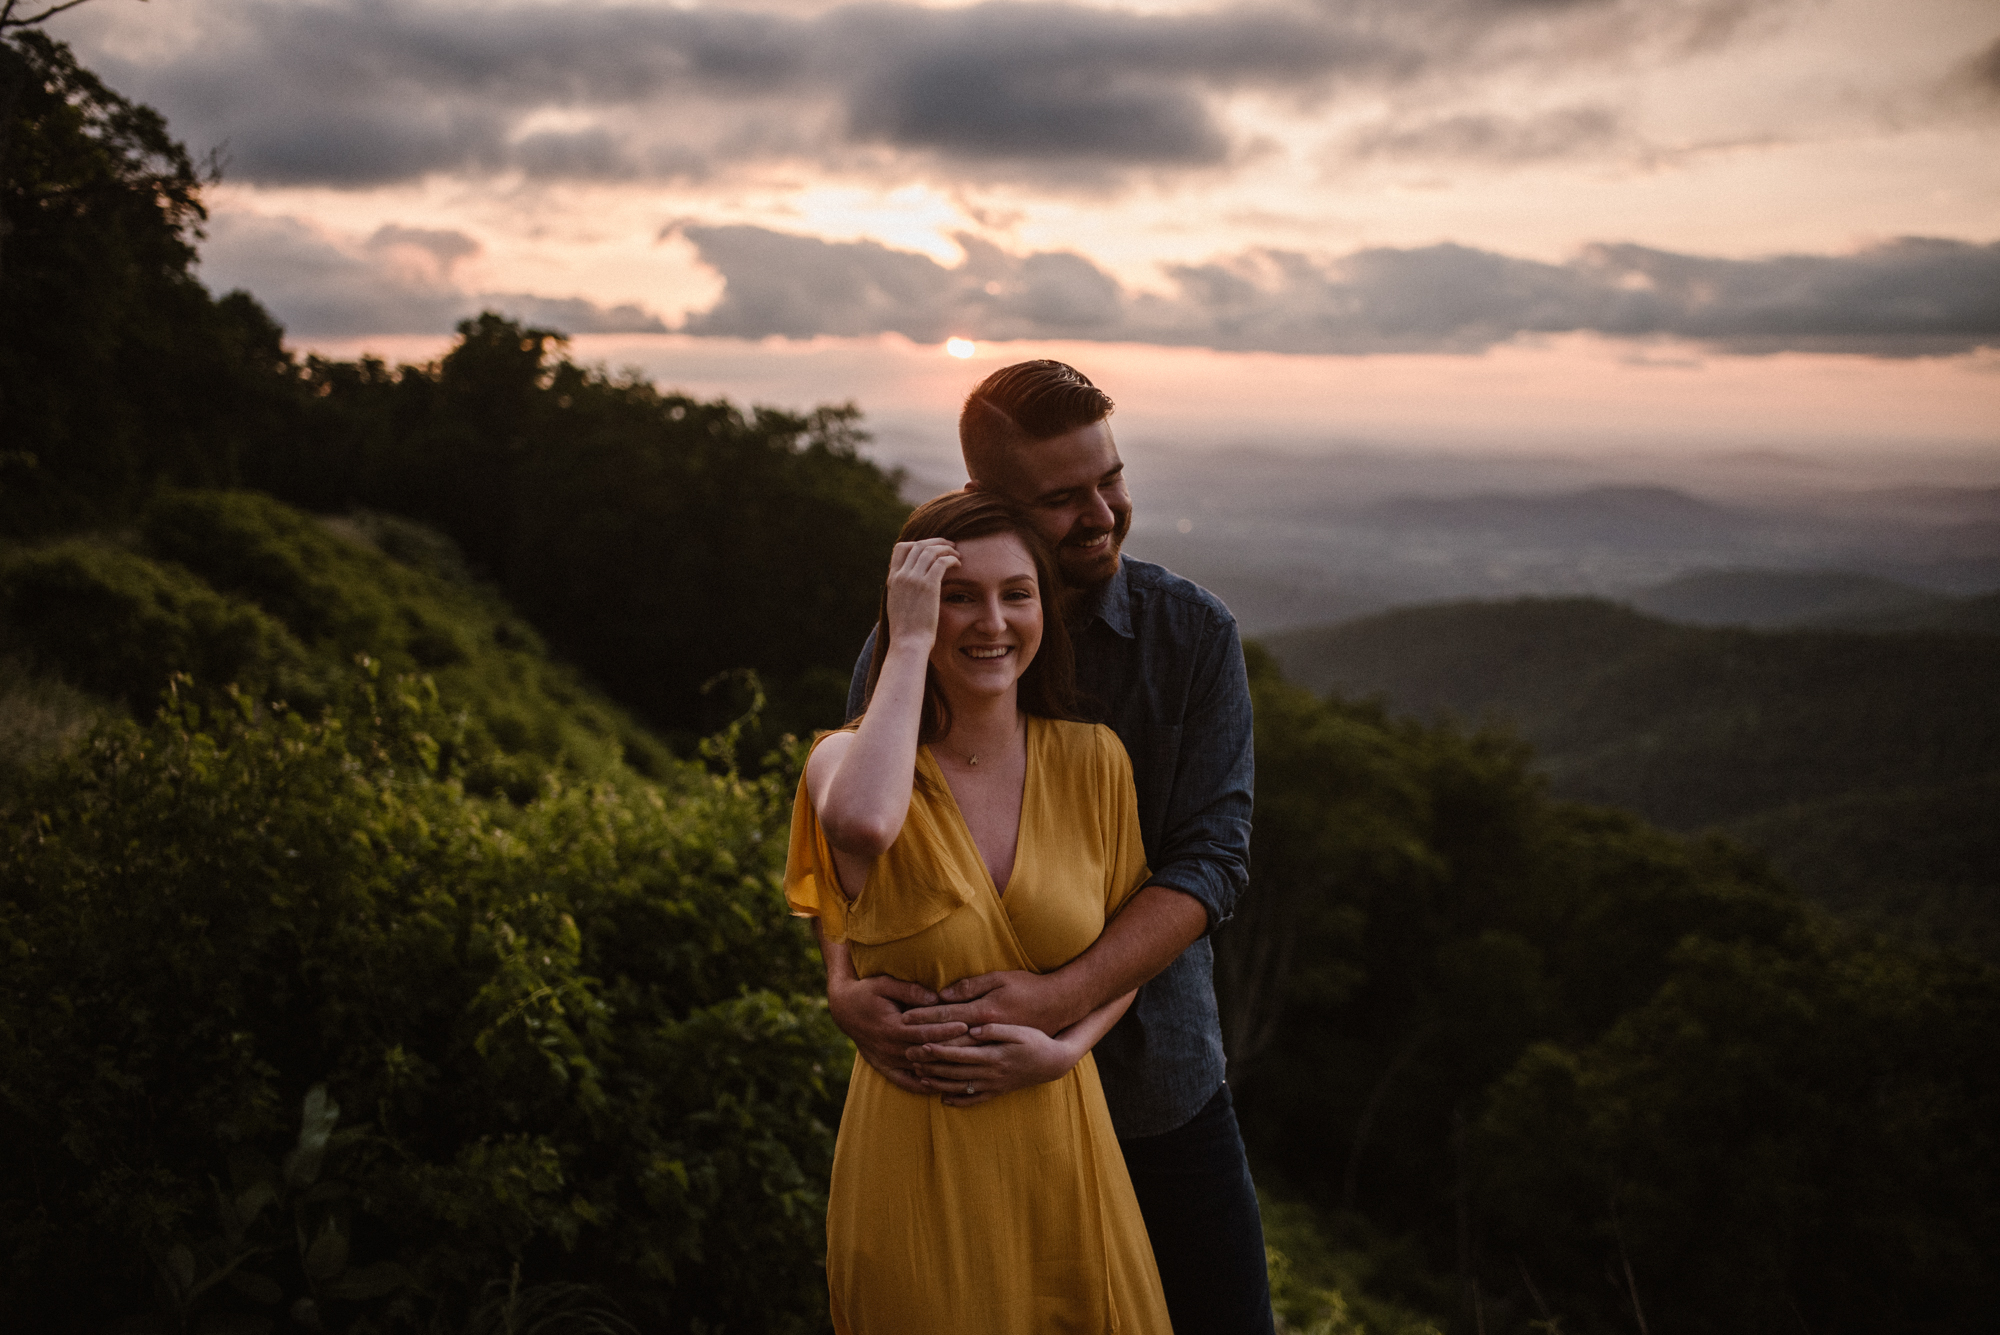 Camryn and Larry Sunrise Engagement Session in Shenandoah National Park - Things to Do in Luray Virginia - Adventurous Couple Photo Shoot White Sails Creative_3.jpg